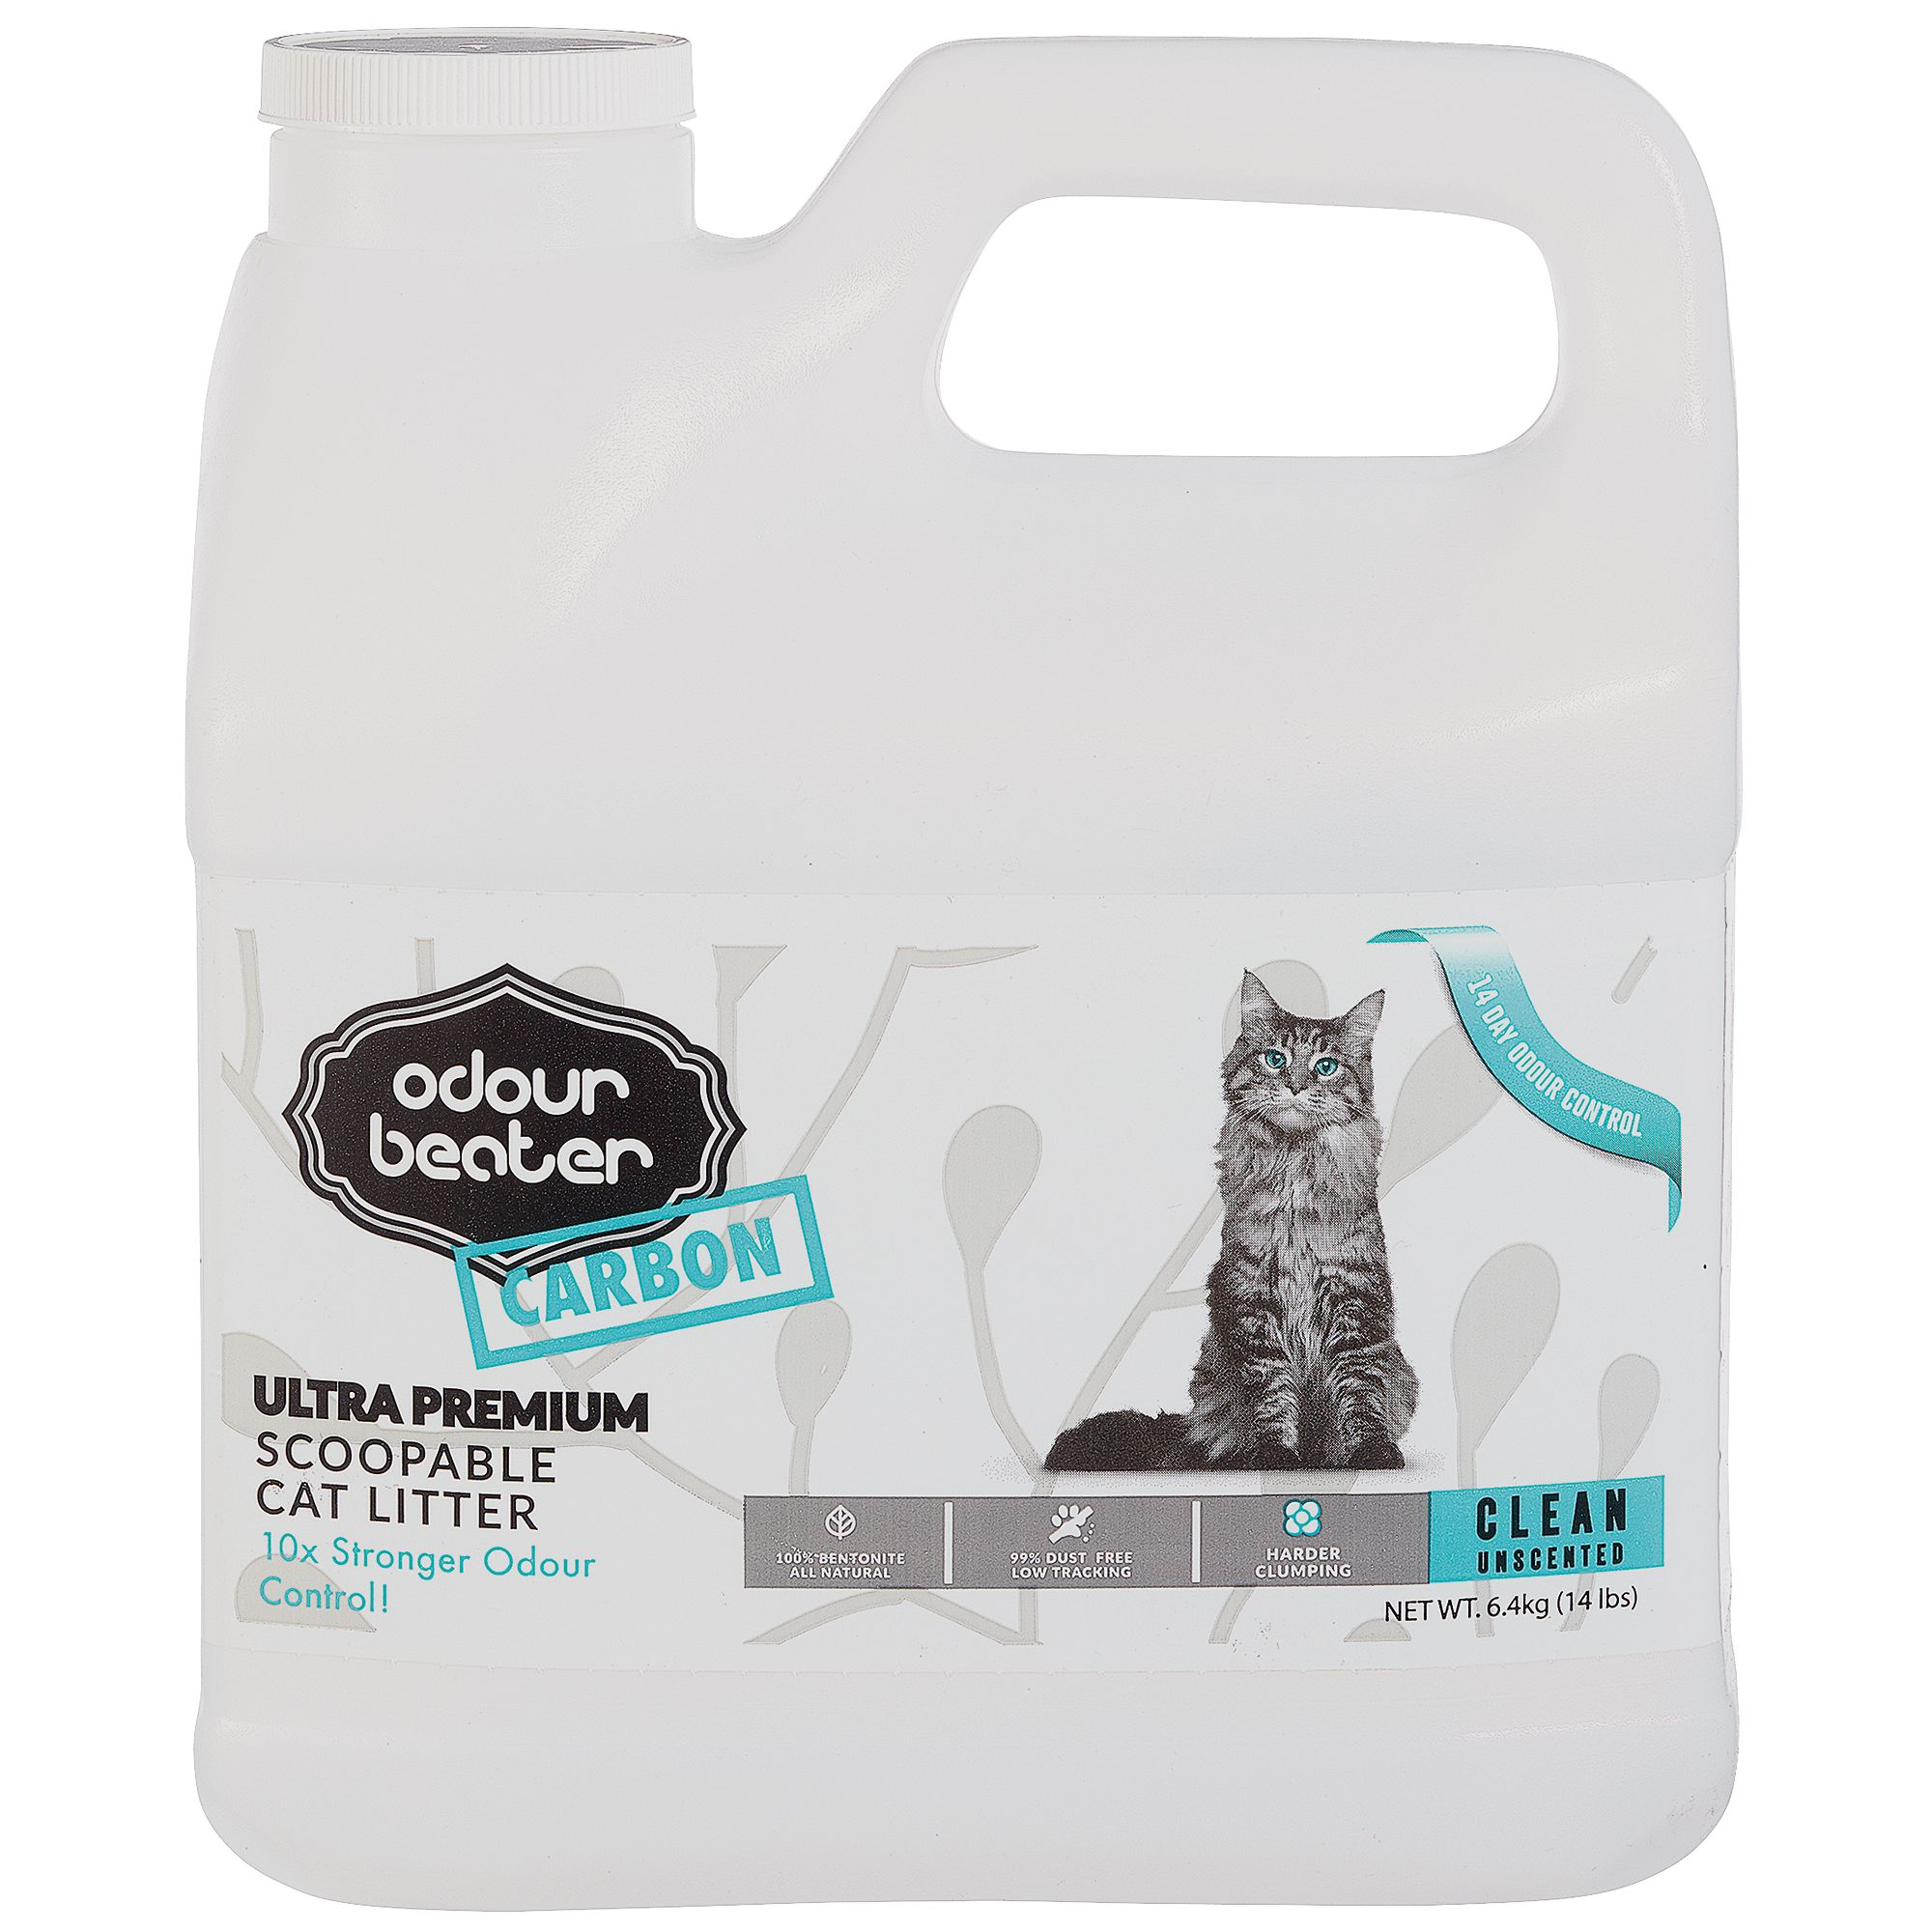 Odour Beater Carbon Cat Litter - Scoopable, Clean Unscented 12.3kg